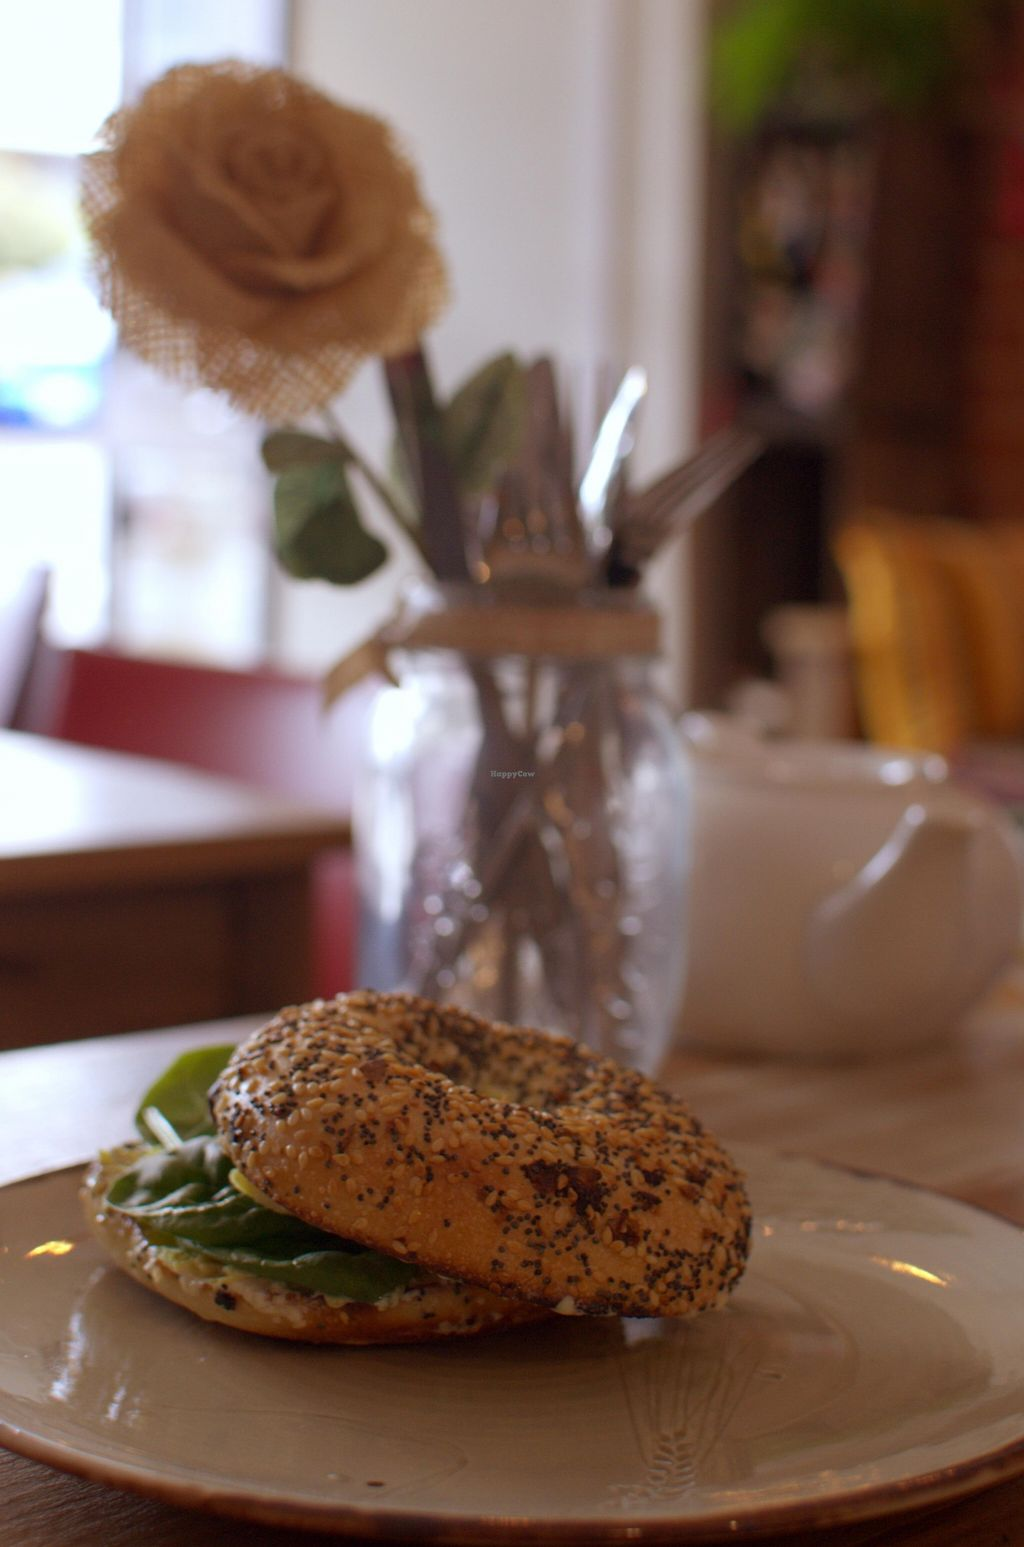 """Photo of CLOSED: From the Art Ethical Handicrafts and Cafe  by <a href=""""/members/profile/chocoholicPhilosophe"""">chocoholicPhilosophe</a> <br/>Avocado and vegan brie bagel <br/> March 31, 2016  - <a href='/contact/abuse/image/63760/142026'>Report</a>"""